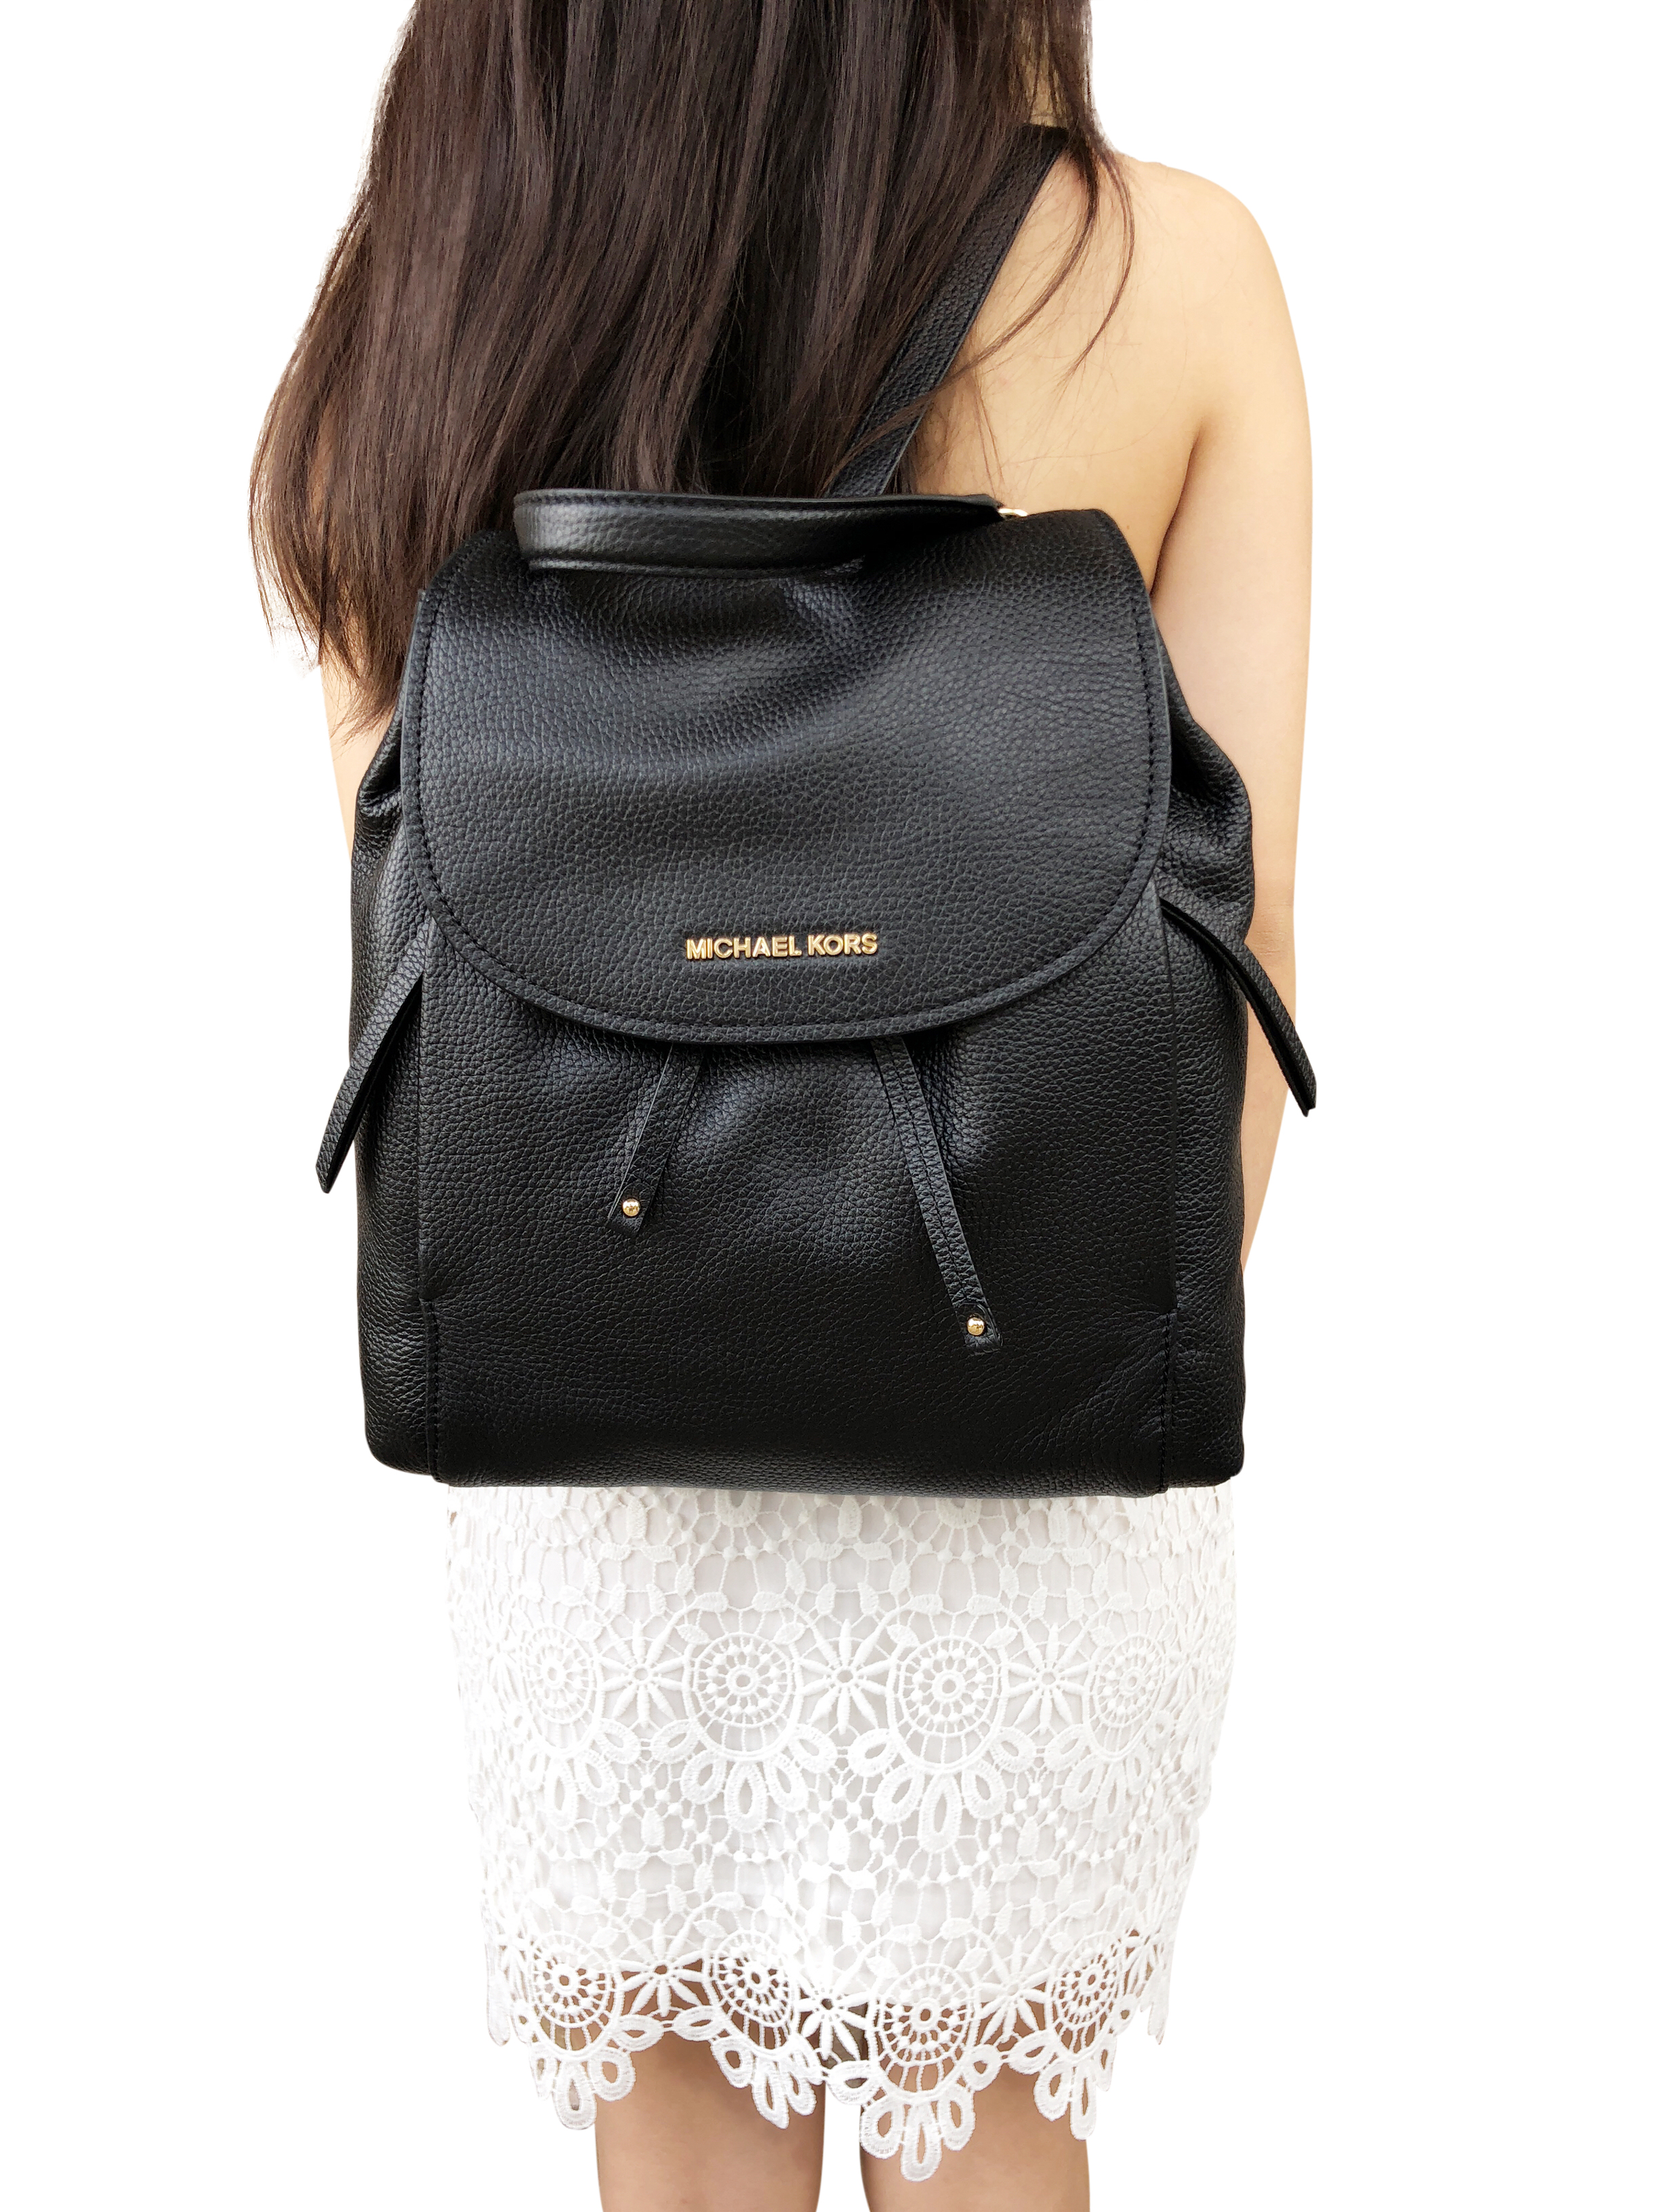 fdcbd0dda2a3 Image is loading Michael-Kors-Riley-Large-Leather-Backpack-Black-Drawstring-